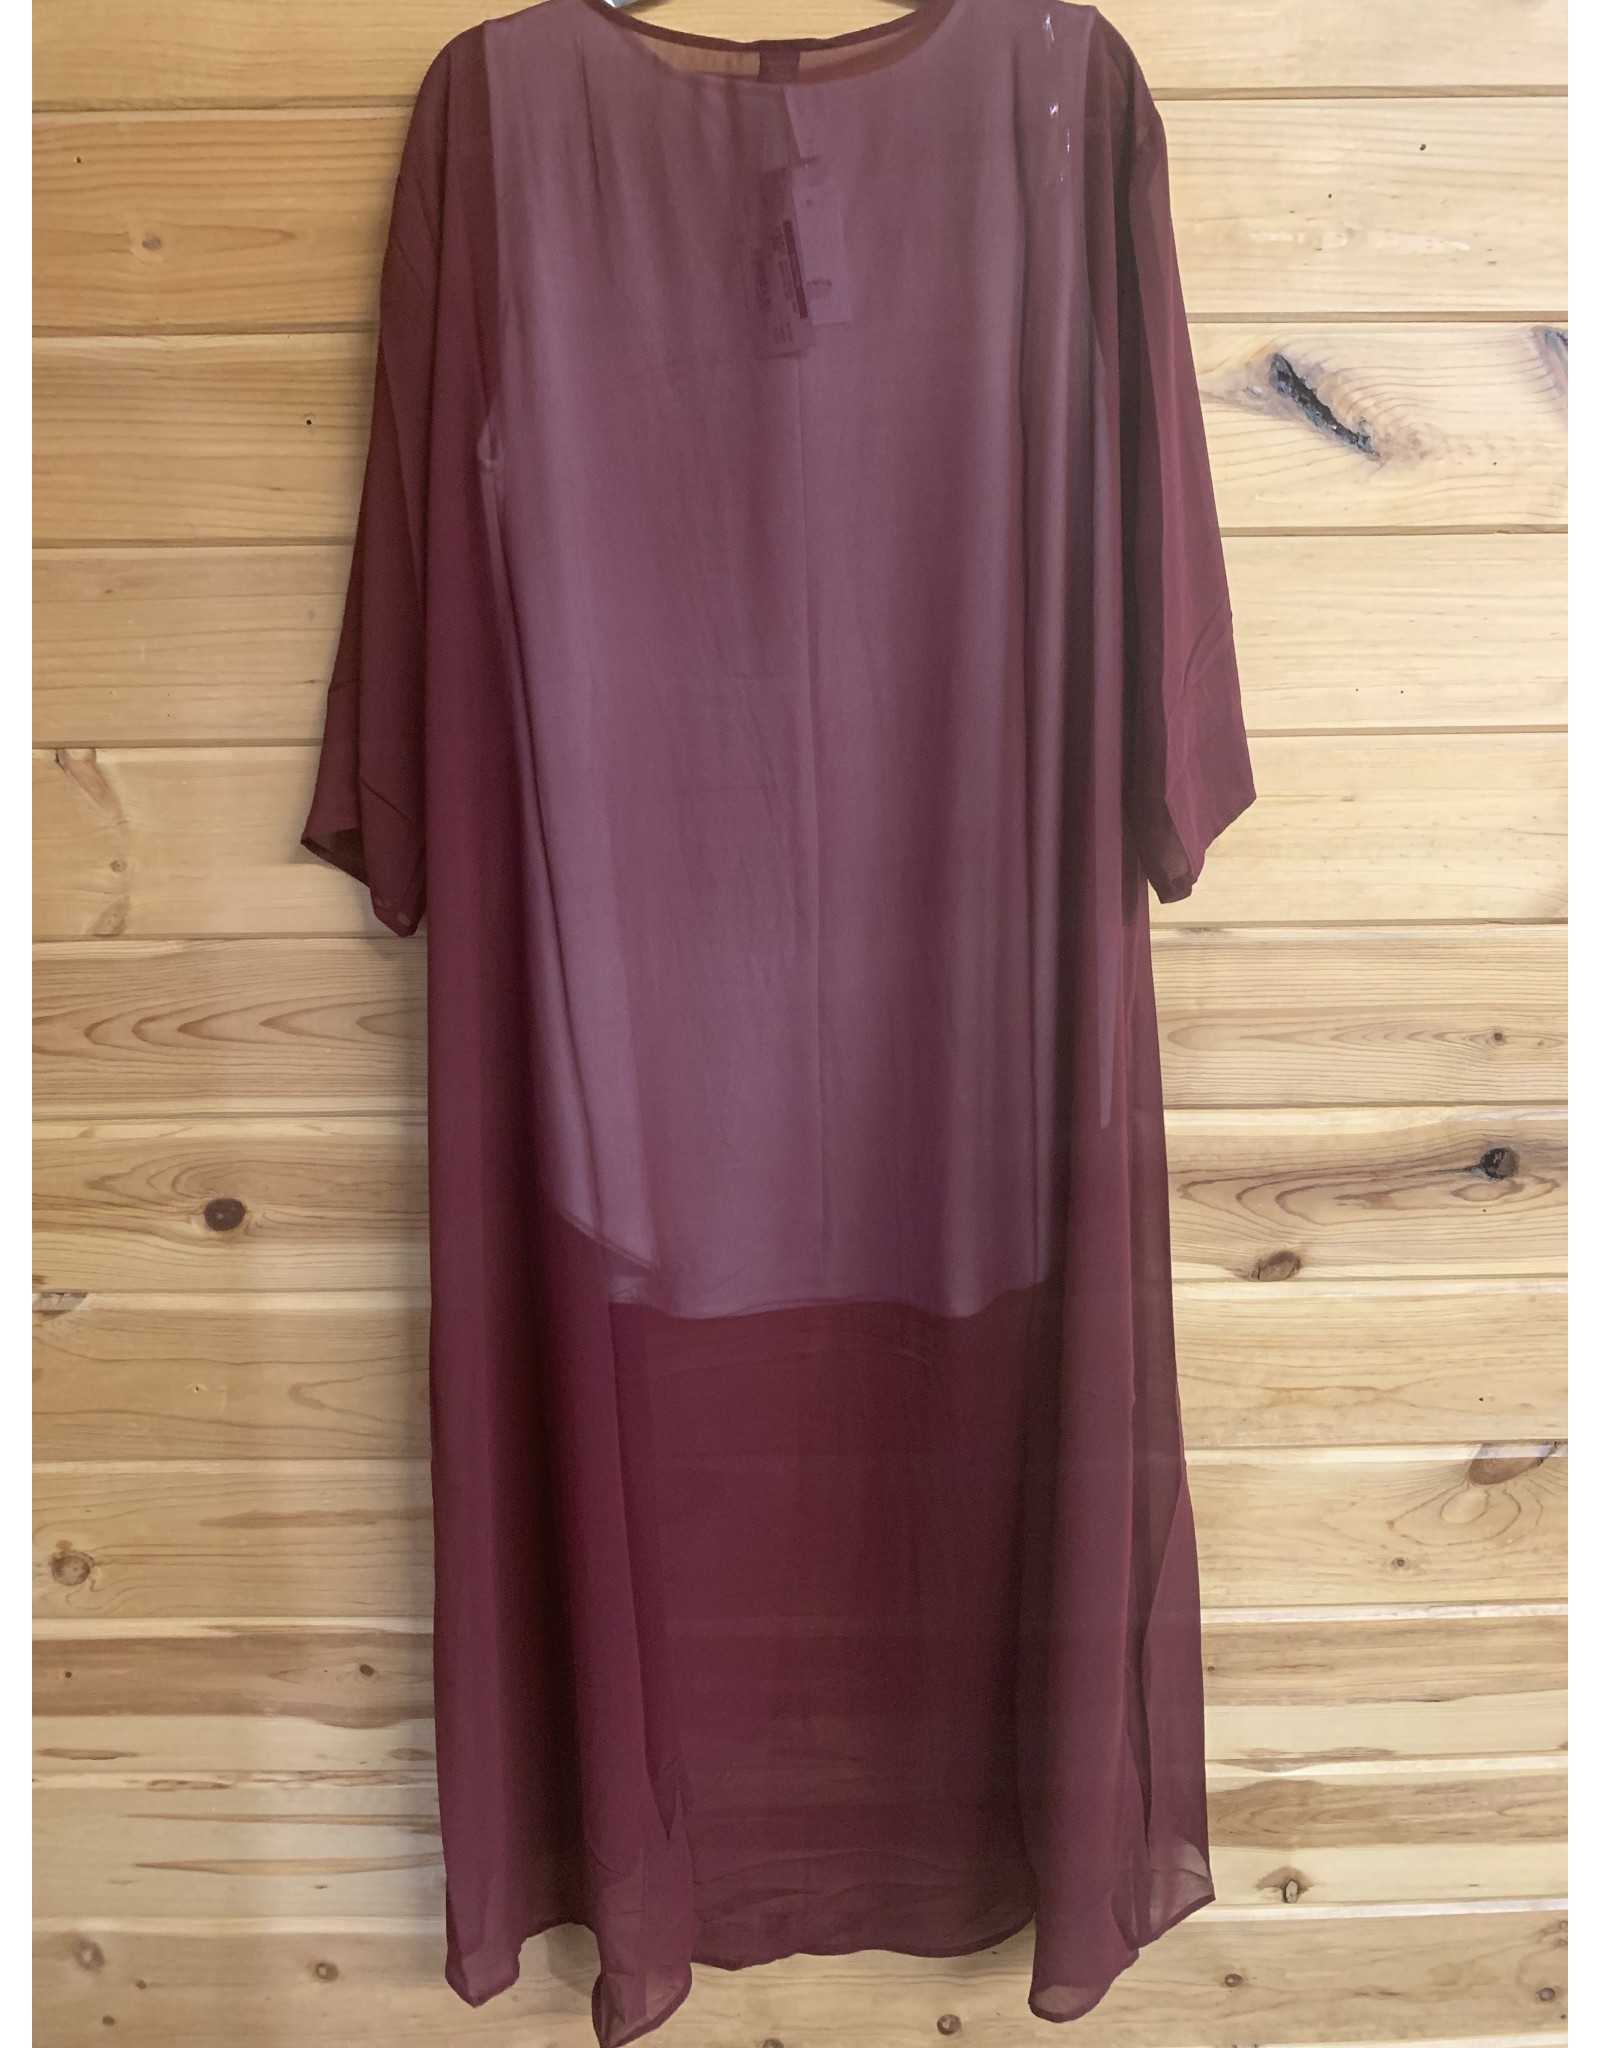 SOLID BURGUNDY LONG KIMONO ONE SIZE